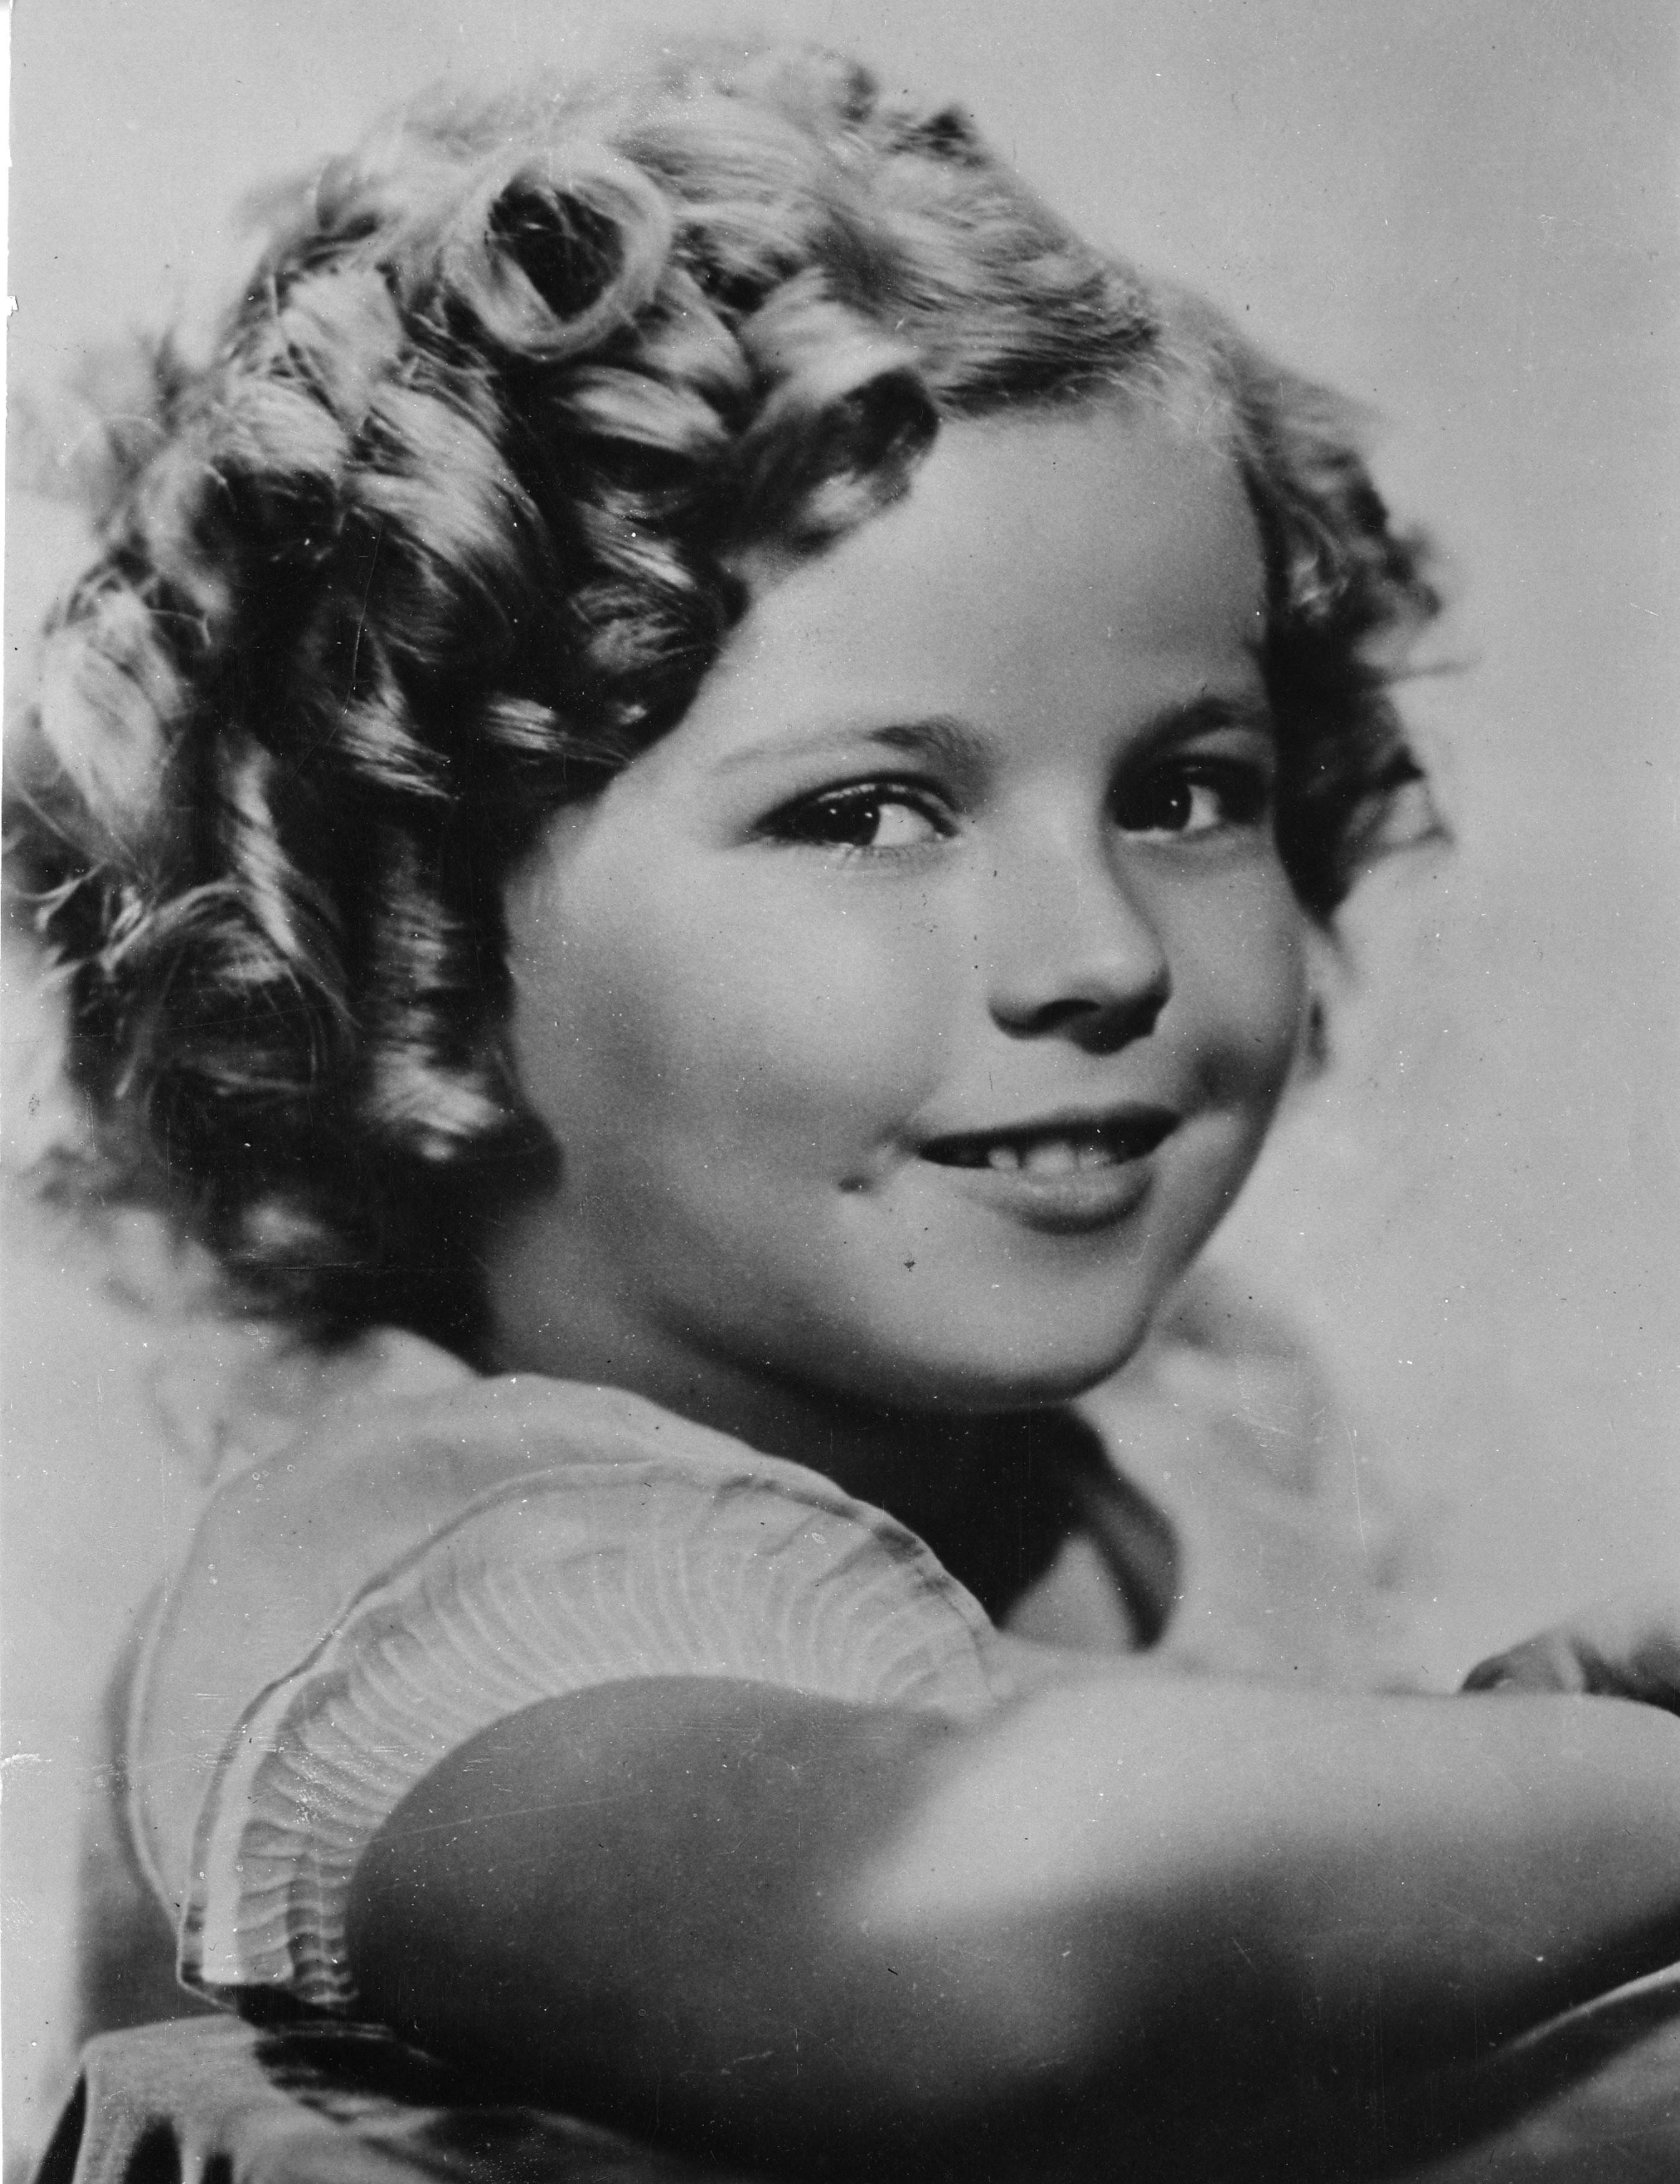 Shirley Temple, the curly-haired child star who put smiles on the faces of Depression-era moviegoers, has died. She was 85. Publicist Cheryl Kagan says Temple, known in private life as Shirley Temple Black, died surrounded by family at her home near San Francisco.